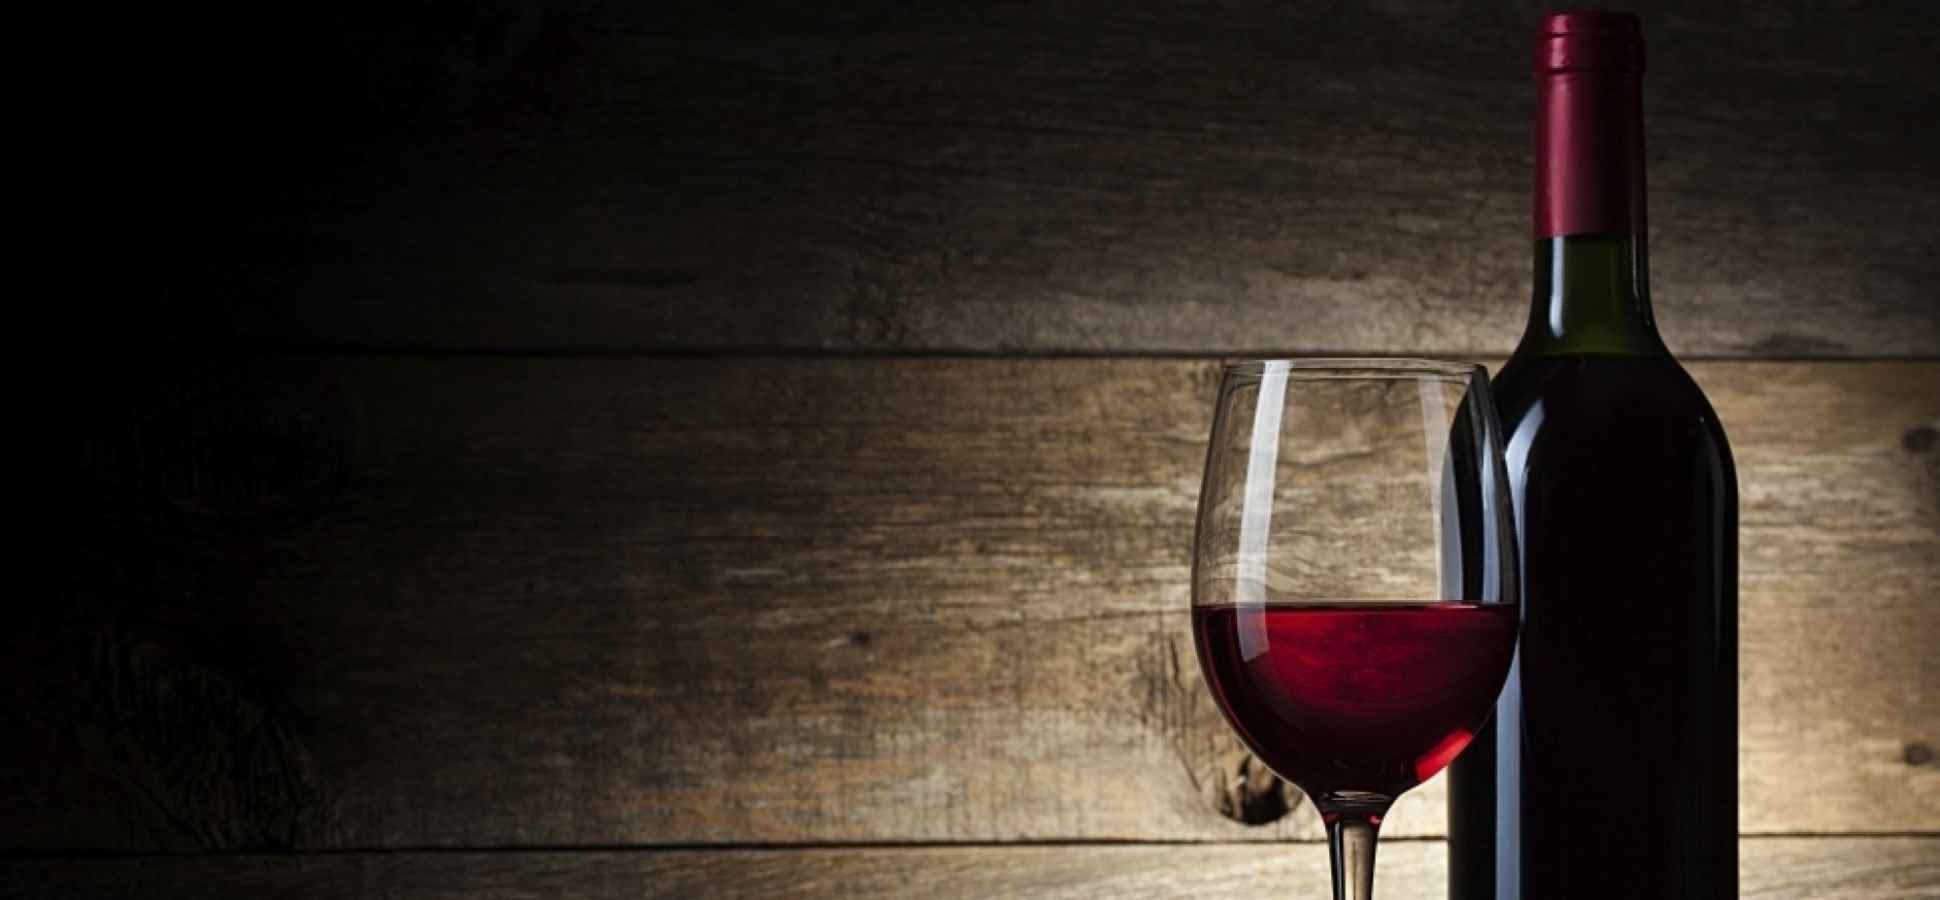 How To Have Your Own Wine Label Without Owning A Winery